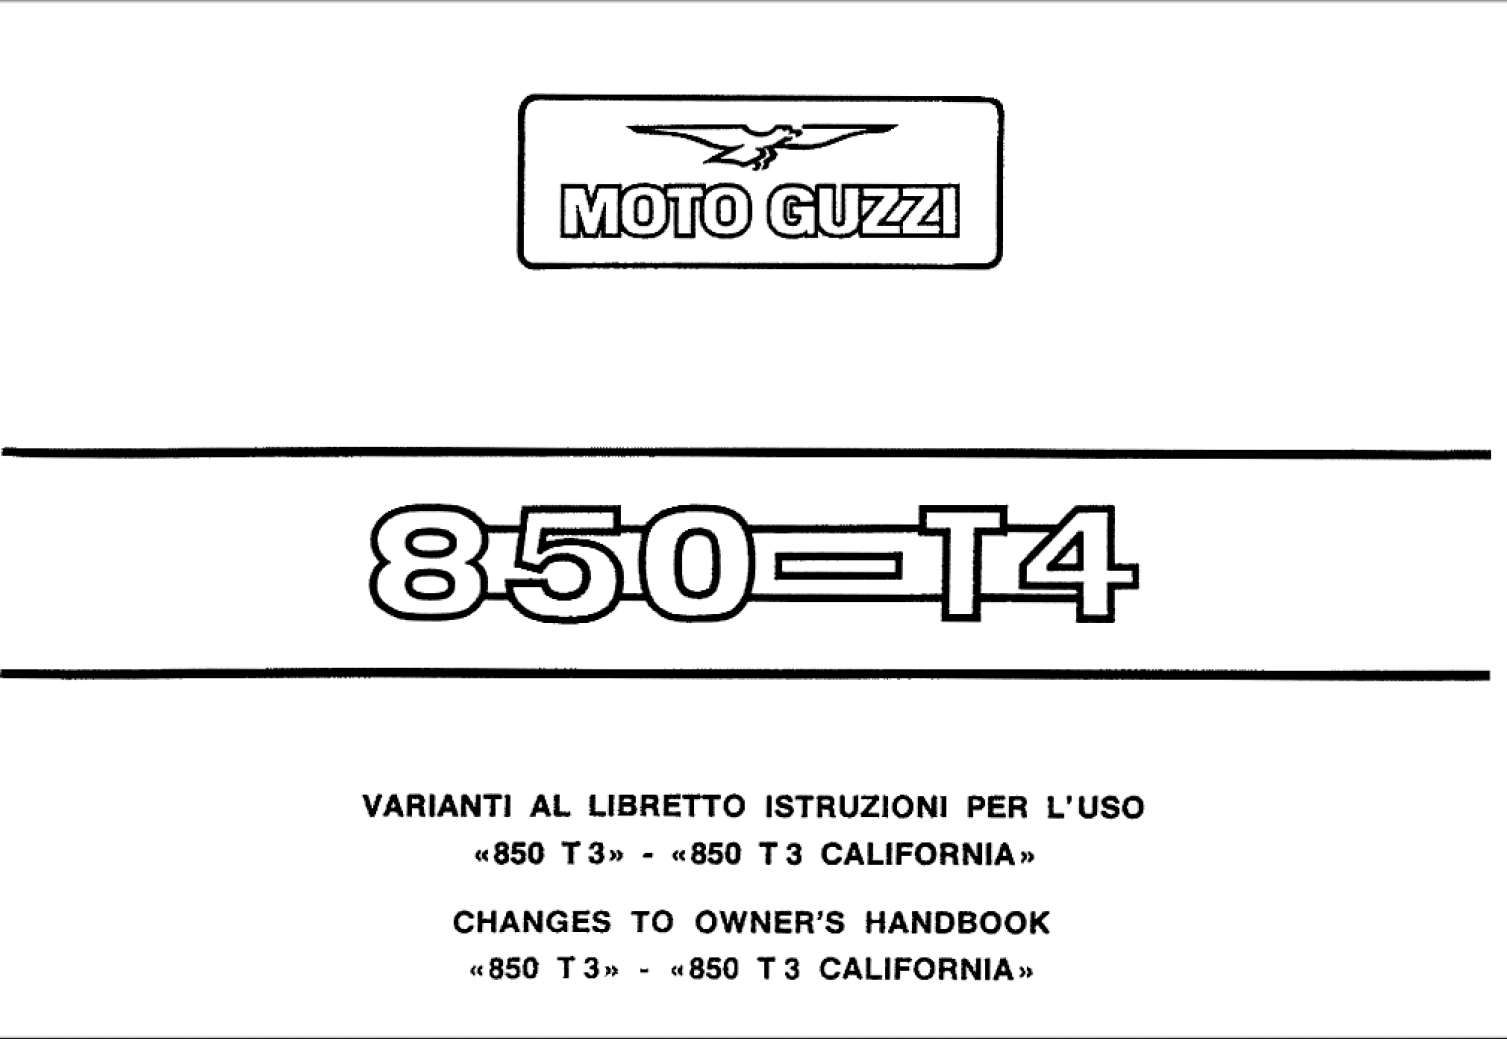 Moto Guzzi T4 T3 2004 Owner S Manual Has Been Published On Procarmanuals Com Https Procarmanuals Com Moto Guzzi T4 T3 2004 Own Moto Guzzi Moto Owners Manuals